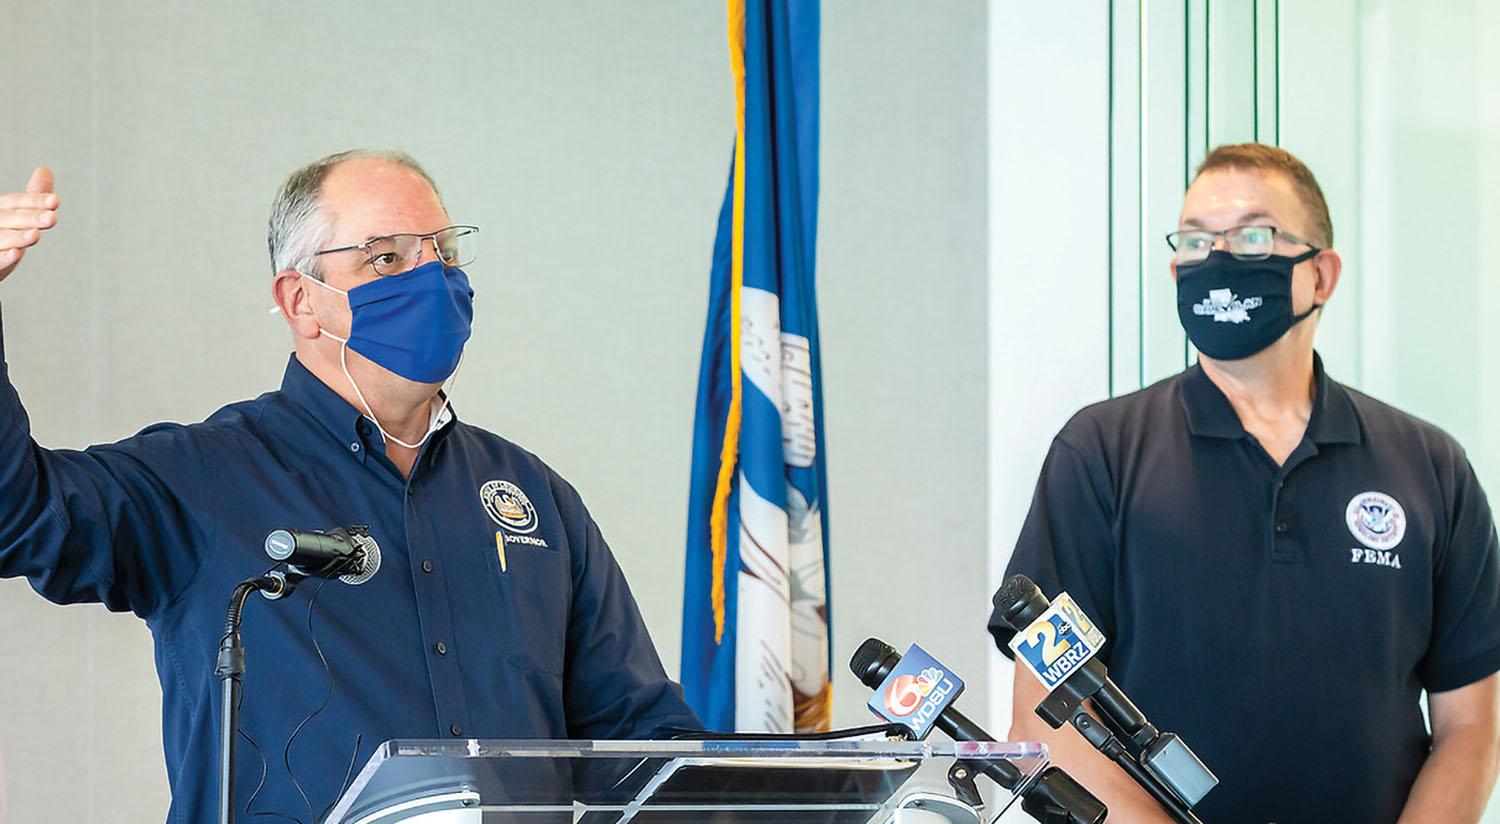 Gov. John Bel Edwards and FEMA Administrator Pete Gaynor speak at a news conference July 13 announcing a smart port initiative between the Water Institute of the Gulf, Louisiana Economic Development and the Port of New Orleans. (Photo courtesy of the Water Institute of the Gulf)